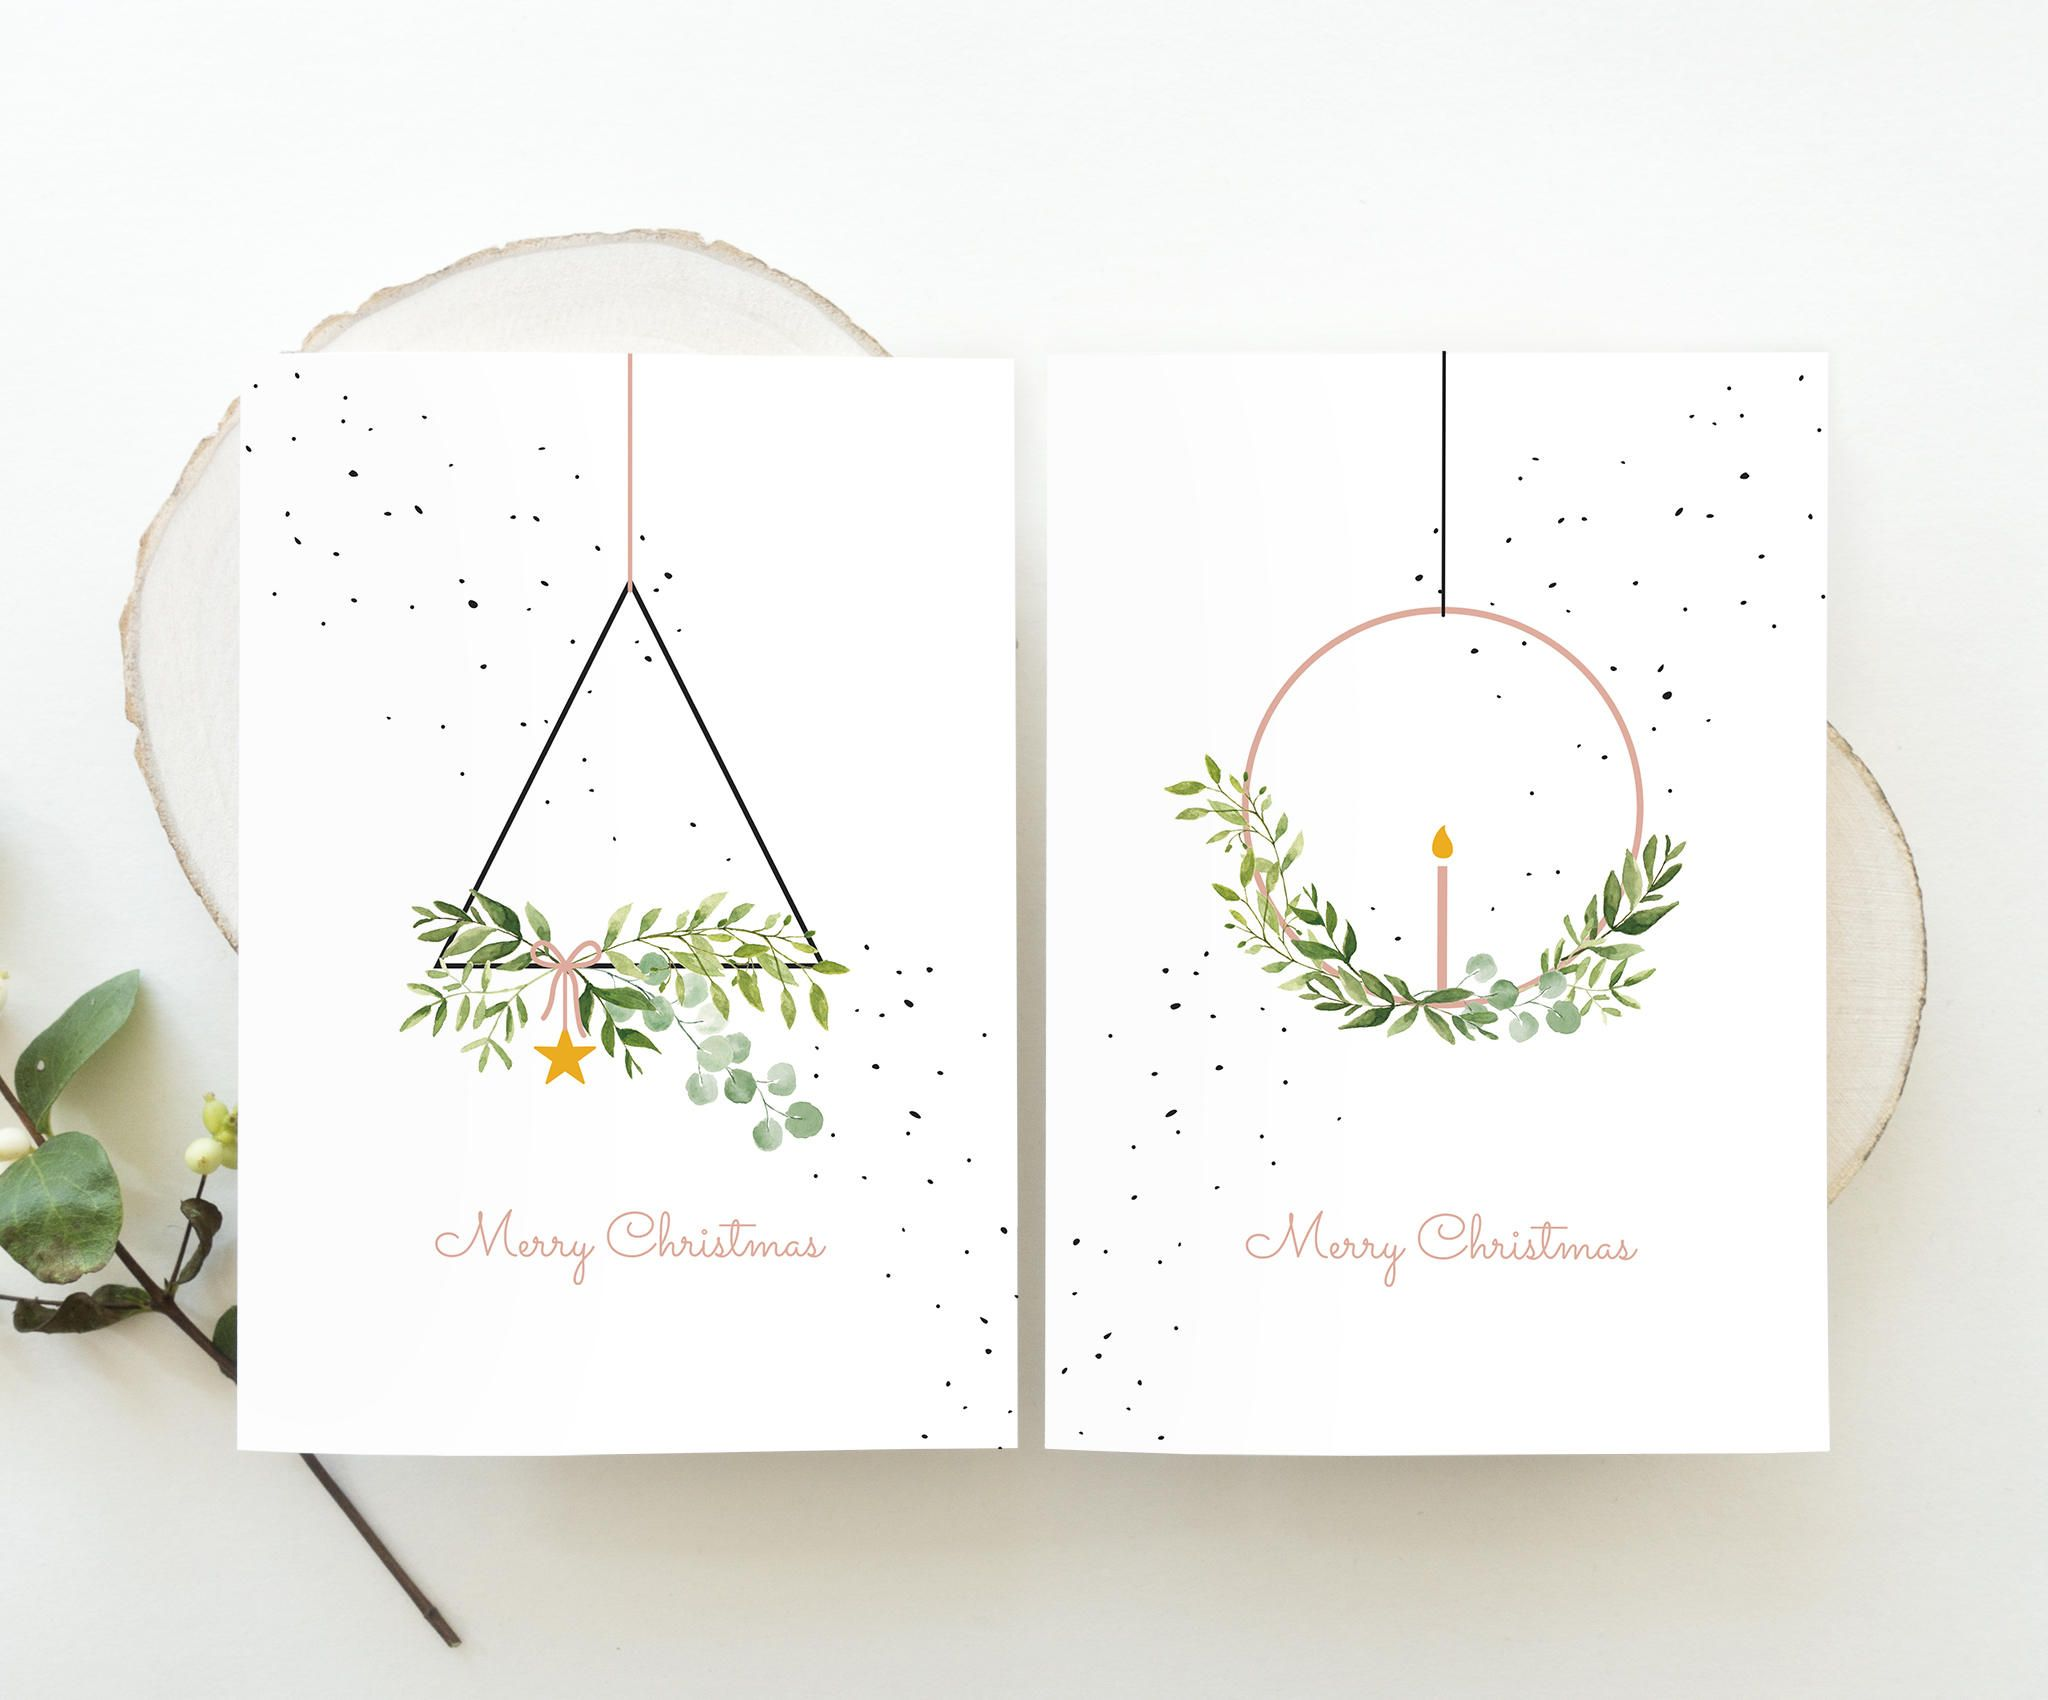 Cartes de Noel ensemble Wreaths-Merry Christmas, illustrations à l'aquarelle de Noel, couronne de Noel moderne, cartes de Noel à la mode nature, Noel 2019